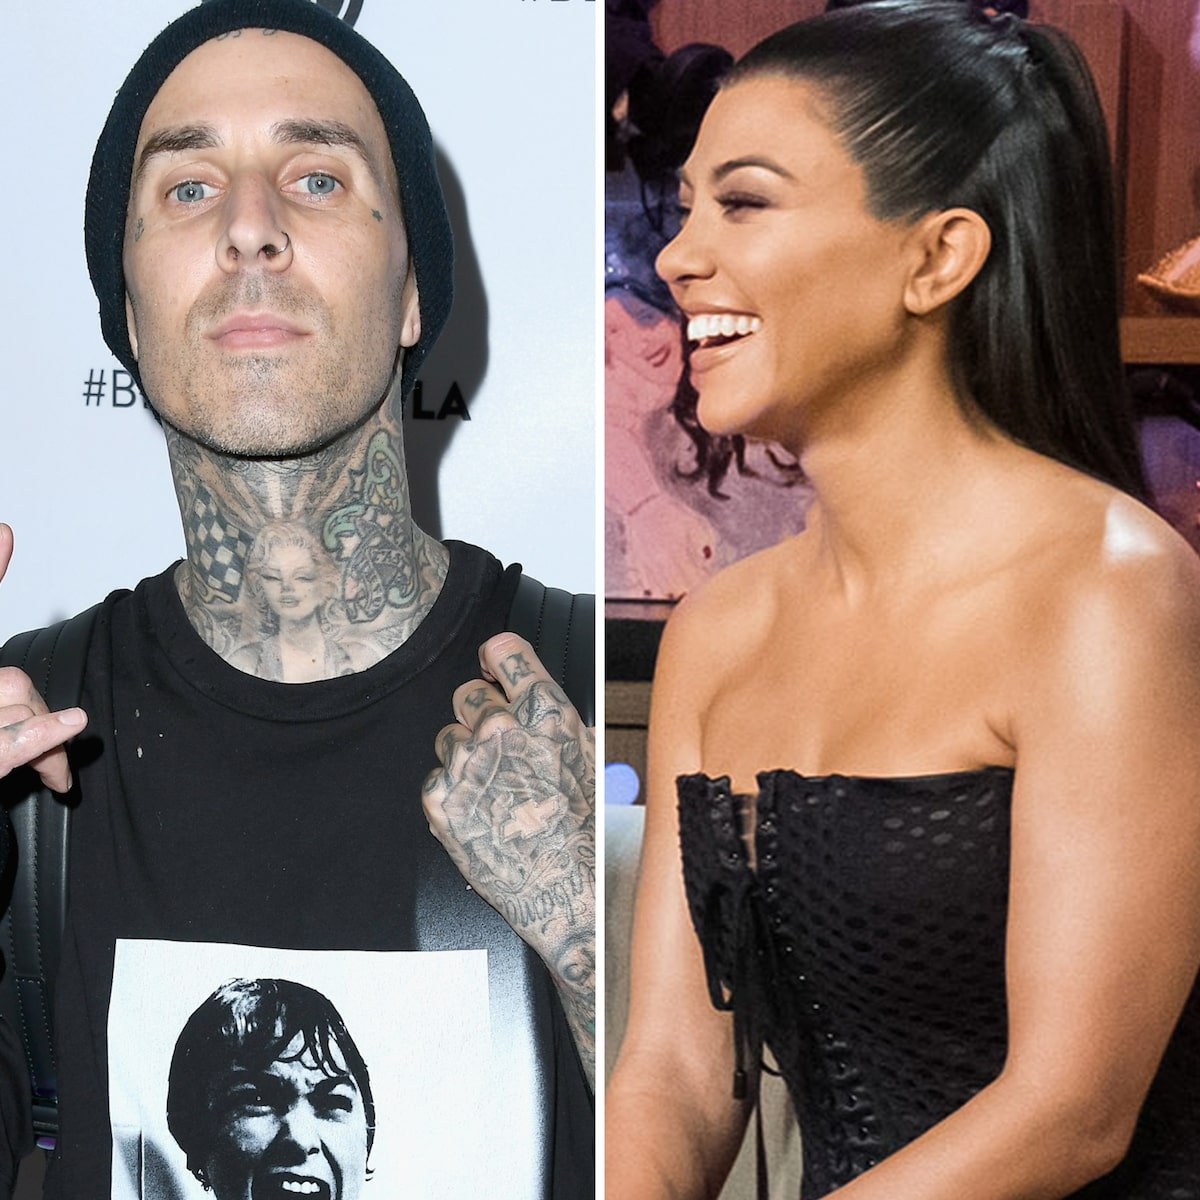 KUWTK: Kourtney Kardashian And Travis Barker – Inside Their Romance And How It Started!